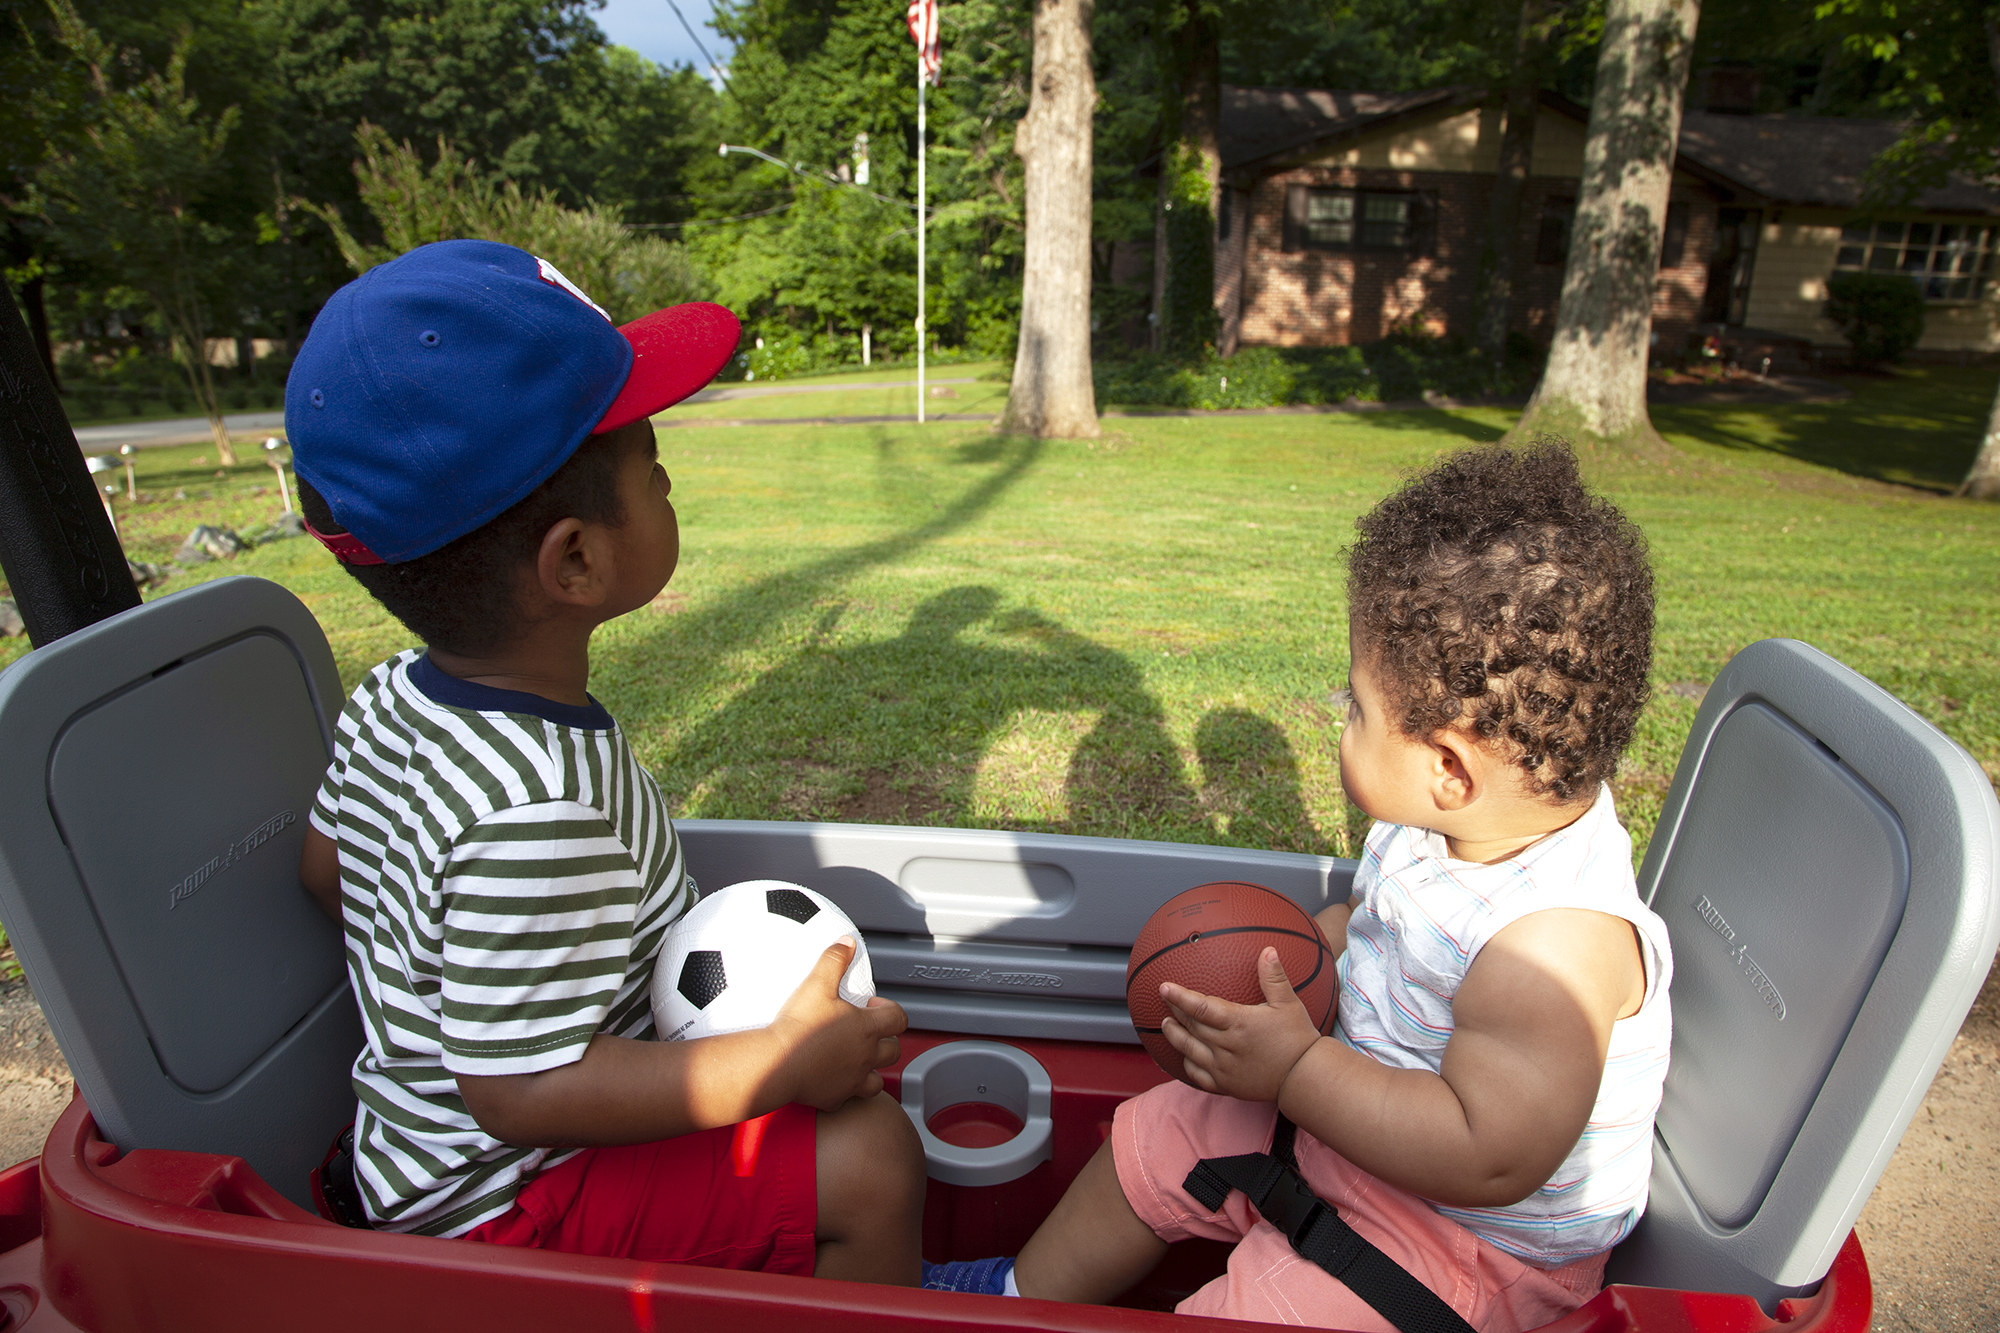 Two boys sit in a red wagon in a front yard, one carrying a small inflatable soccer ball and the other a basketball